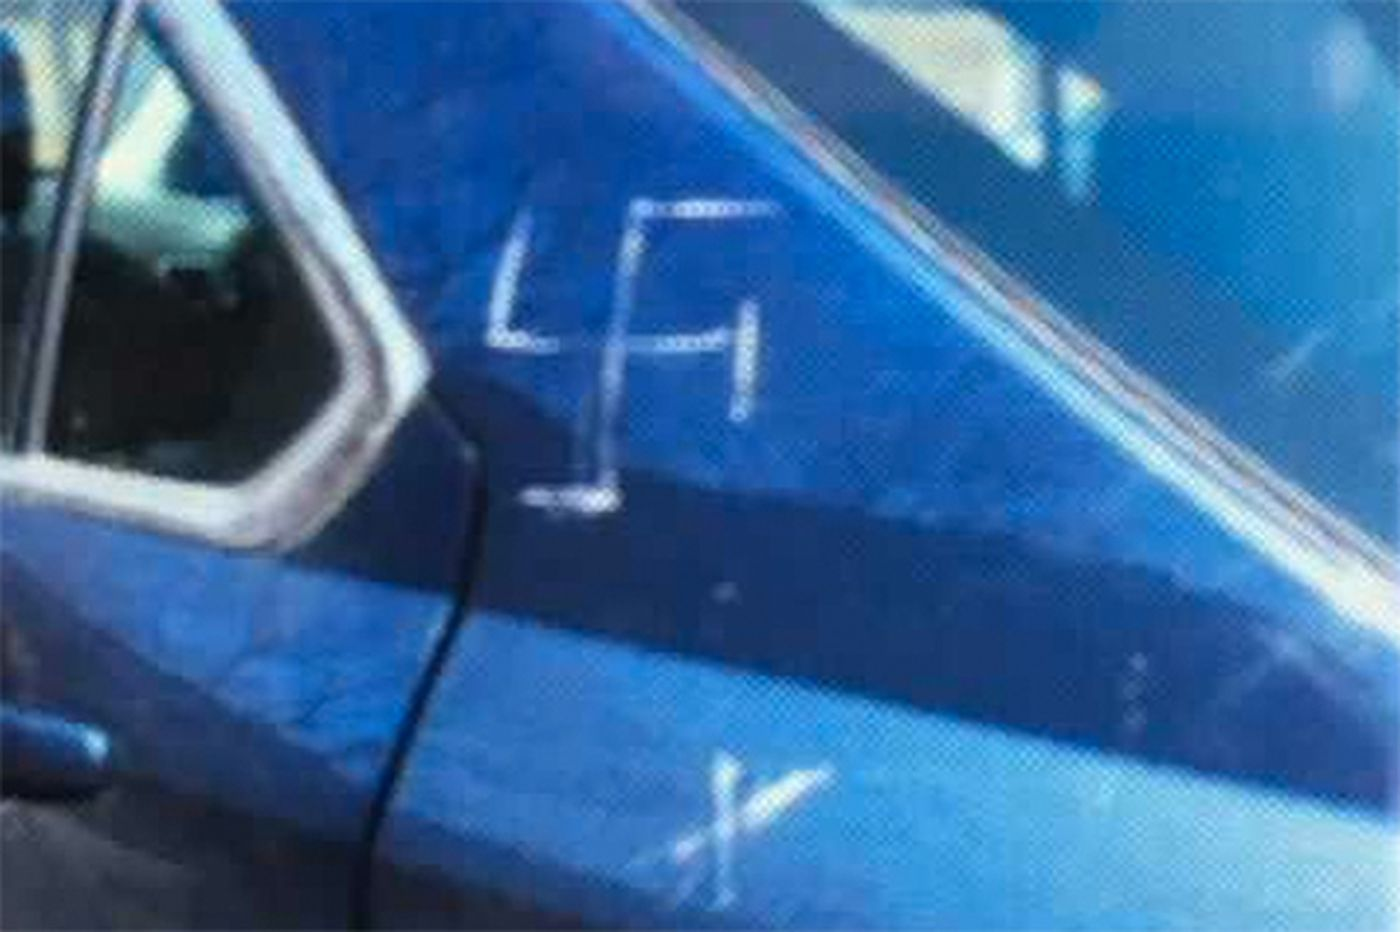 Swastika among reports of vandalism in Warminster